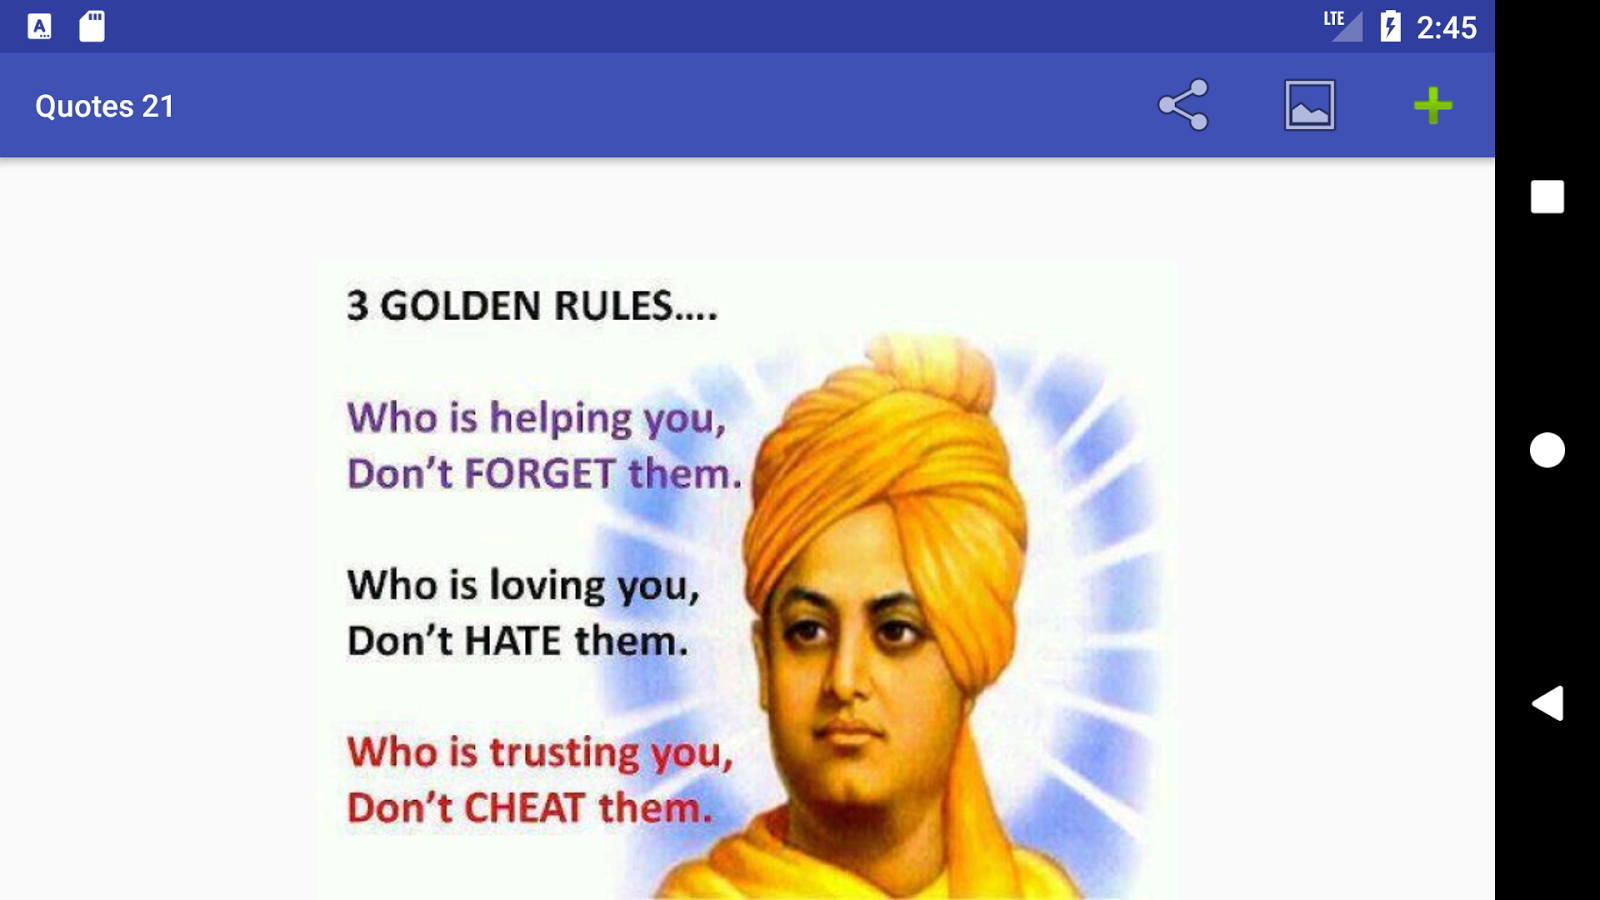 Quotes Vivekananda Swami Vivekananda Quotes Offline  Android Apps On Google Play